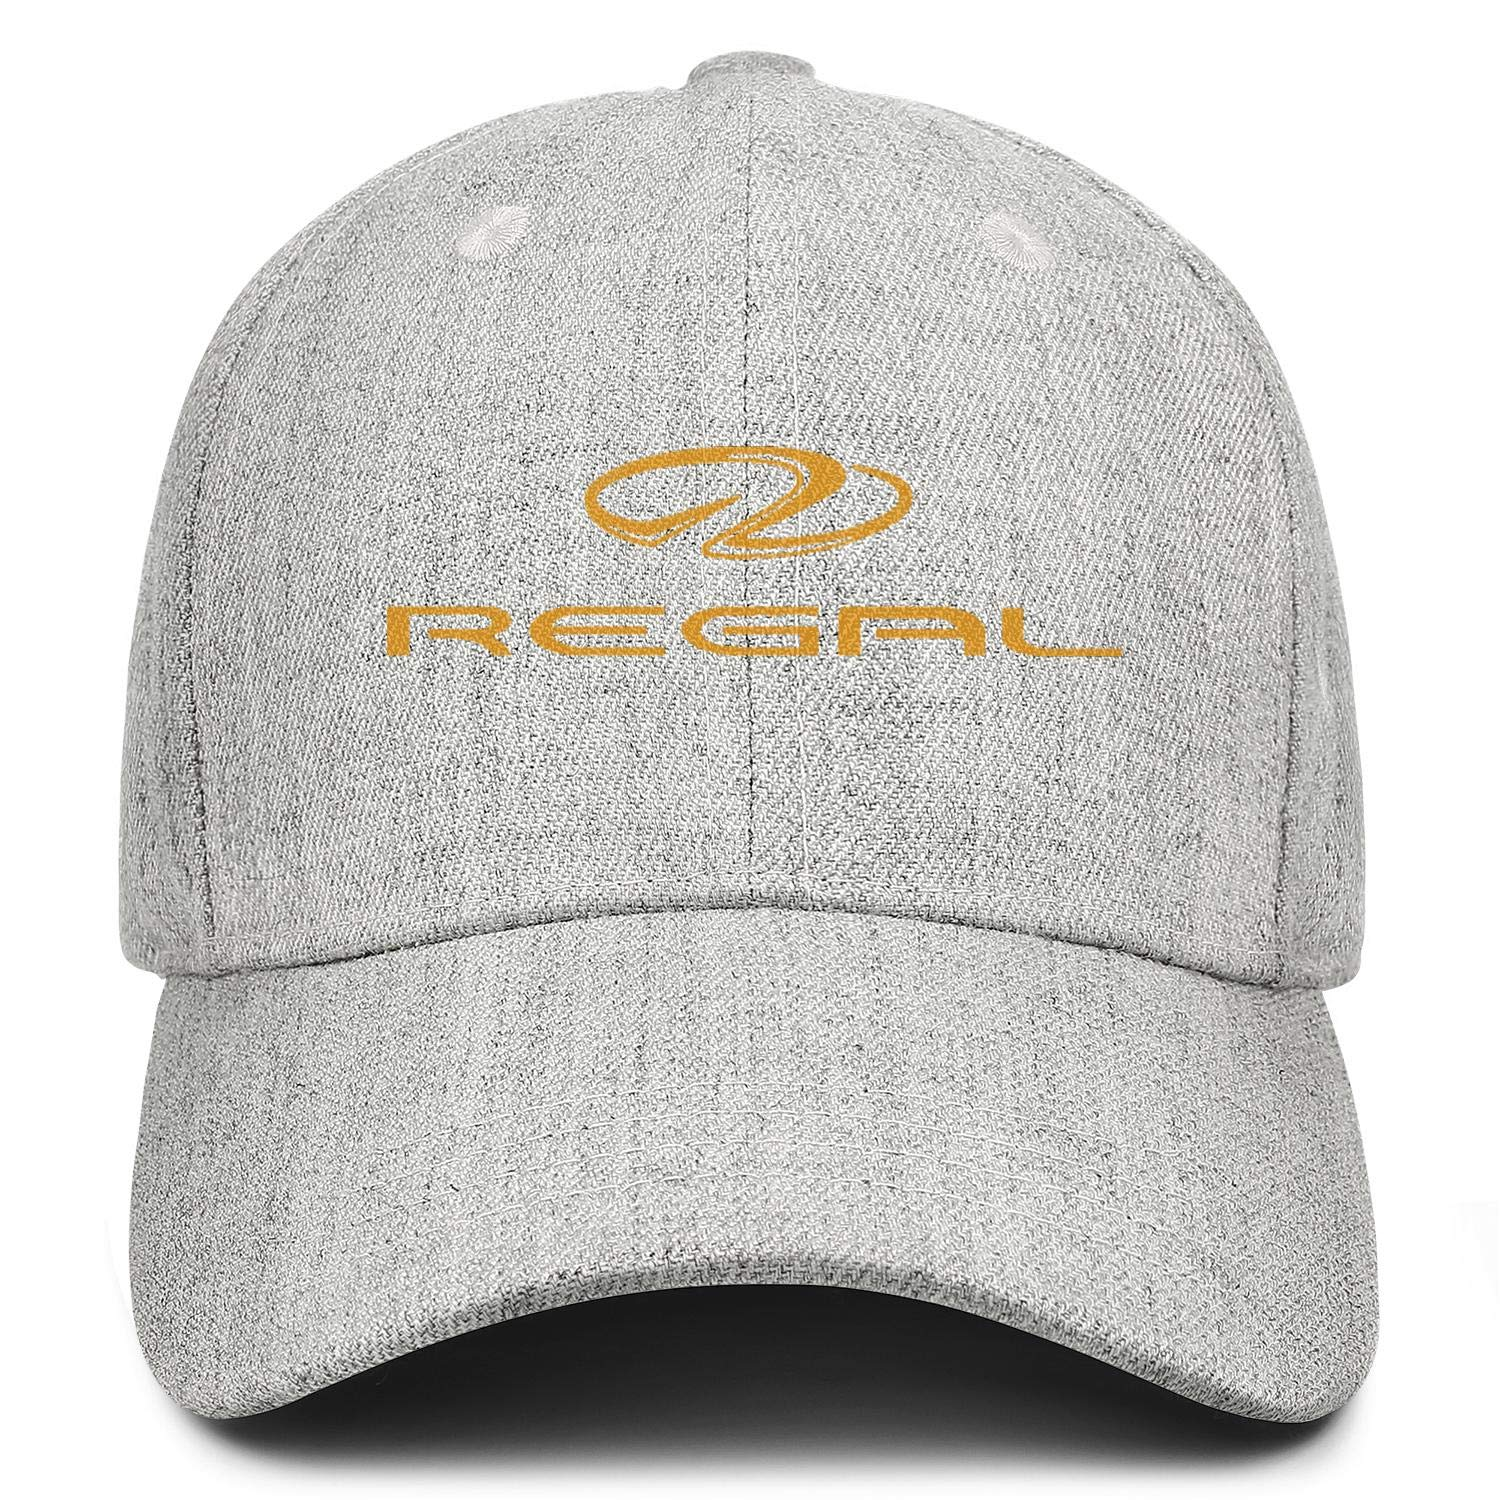 Adjustable Baseball Cap Wool Snapback Dad Hat Cool Unconstructed Trucker Hat LiyeRRy Regal-Yacht-Decal-Gold